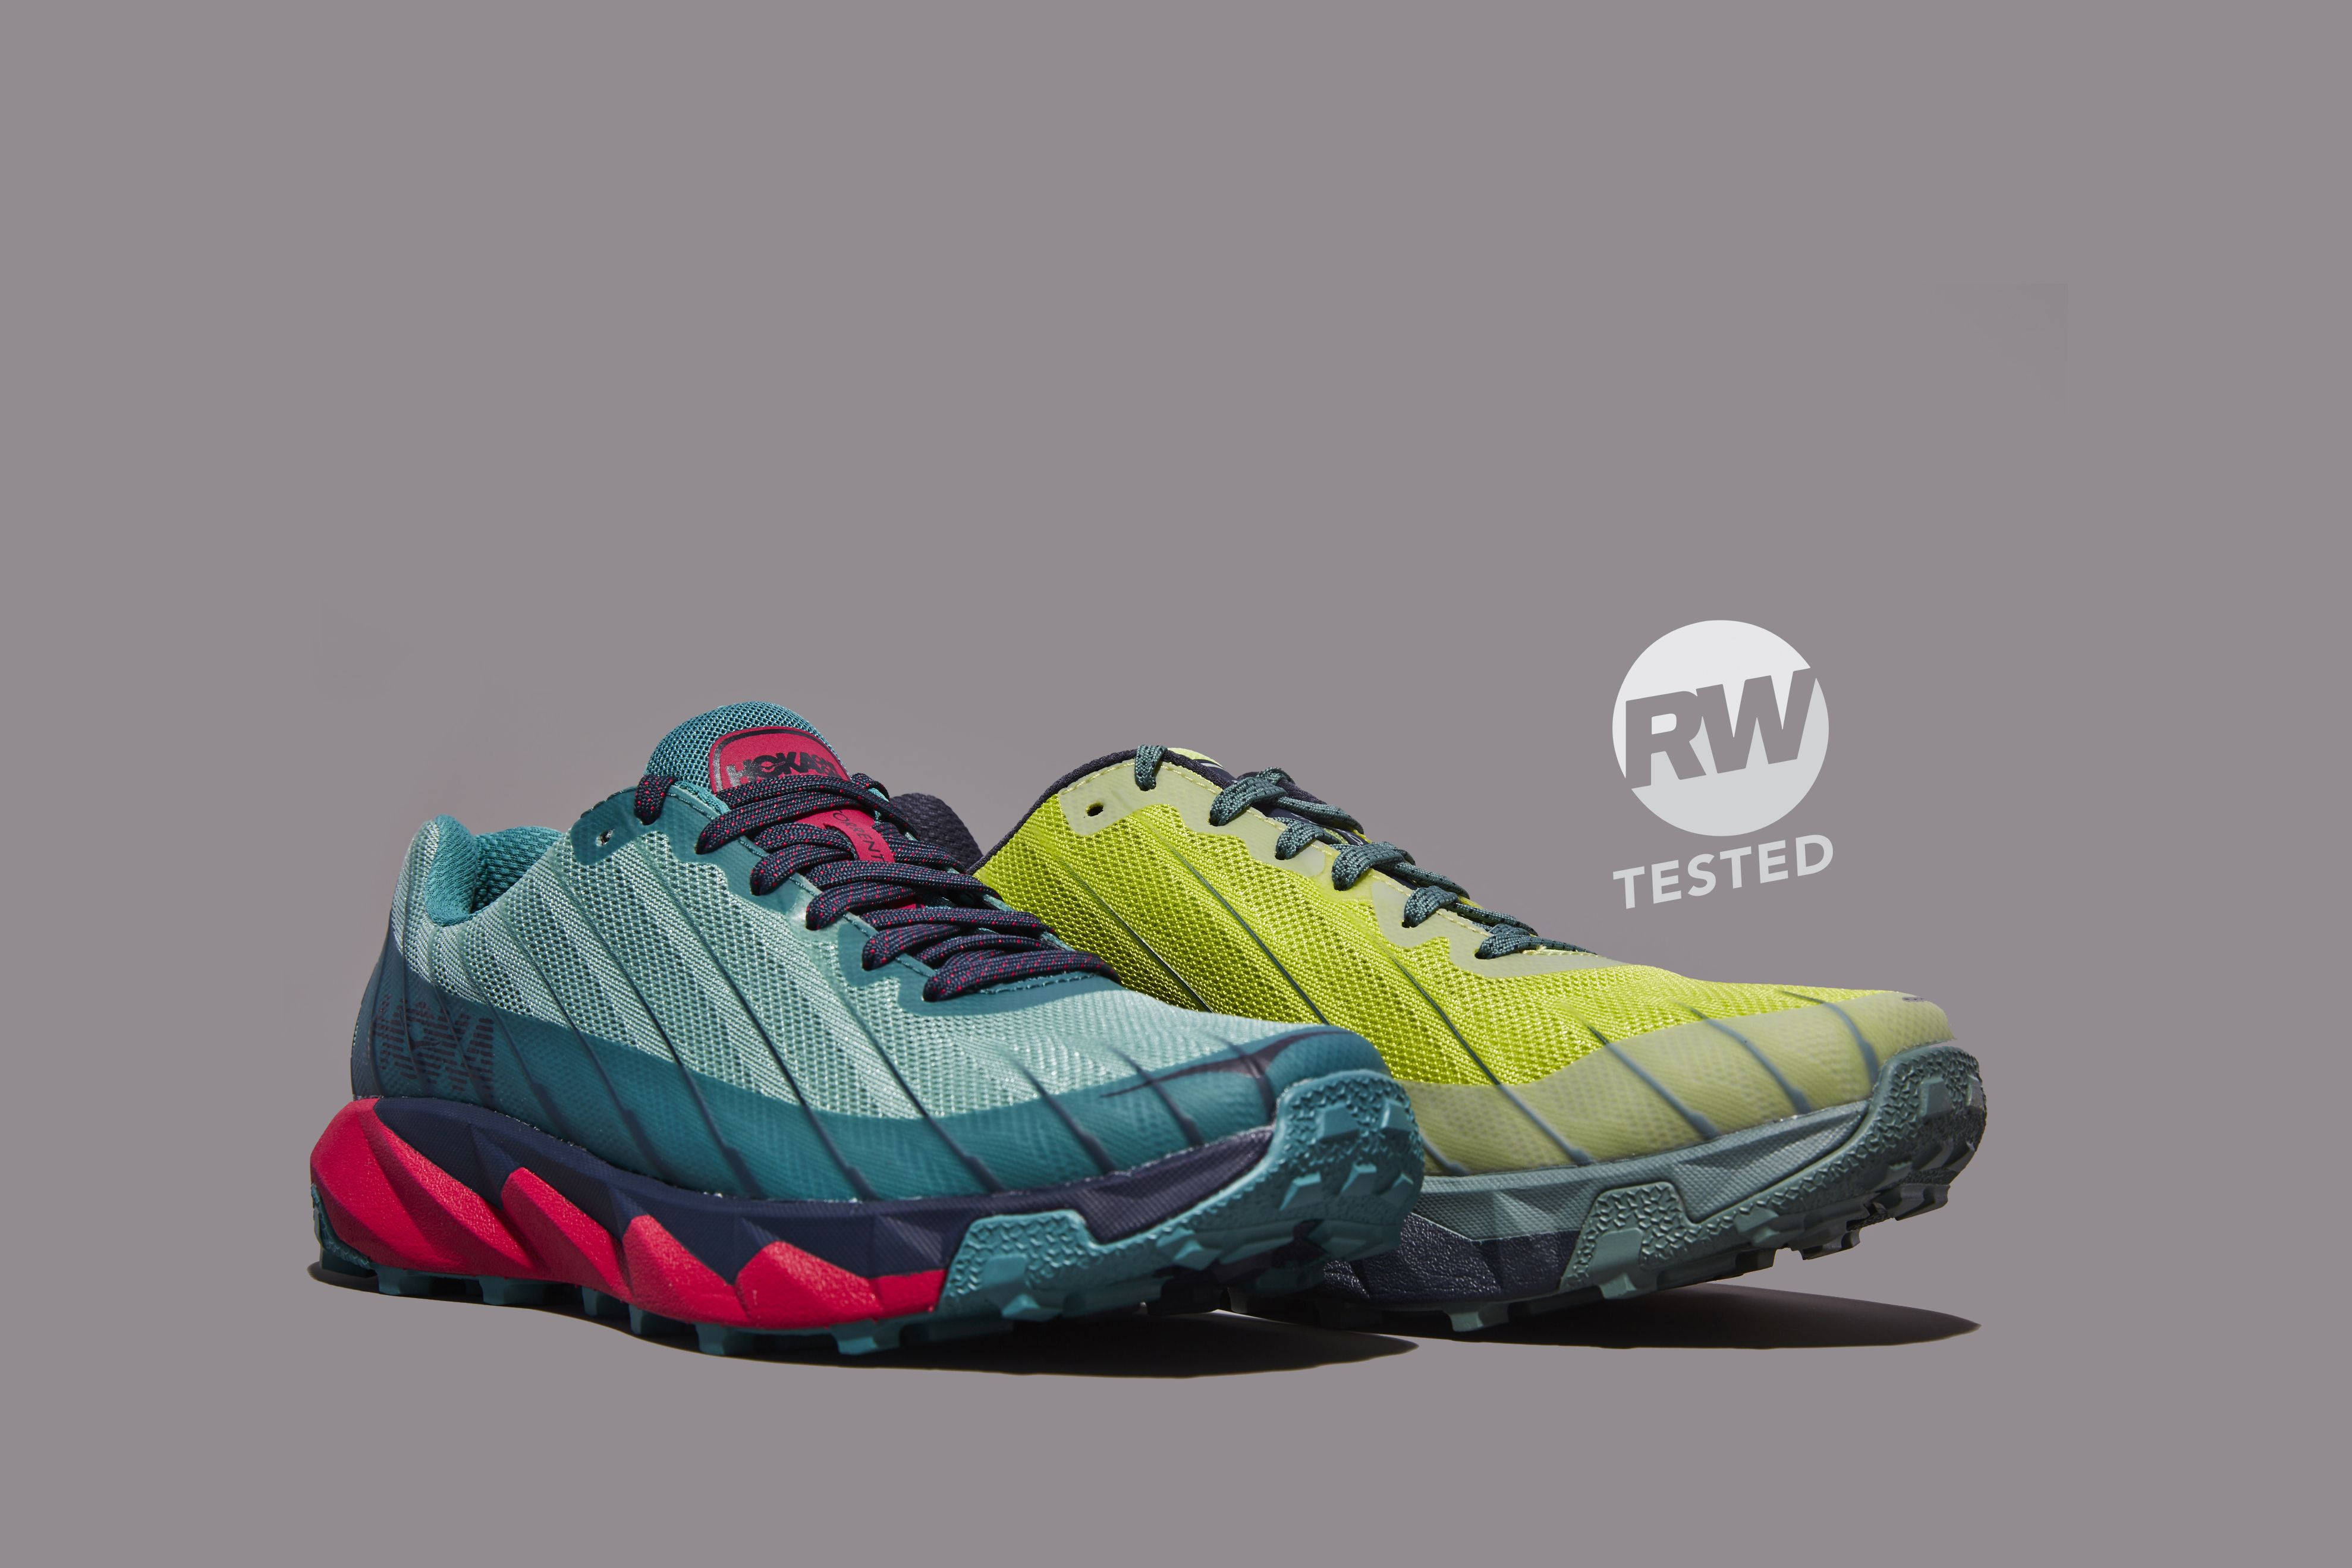 0a9c66b4022 Hoka One One Torrent Review 2018 | Best Trail Running Shoes